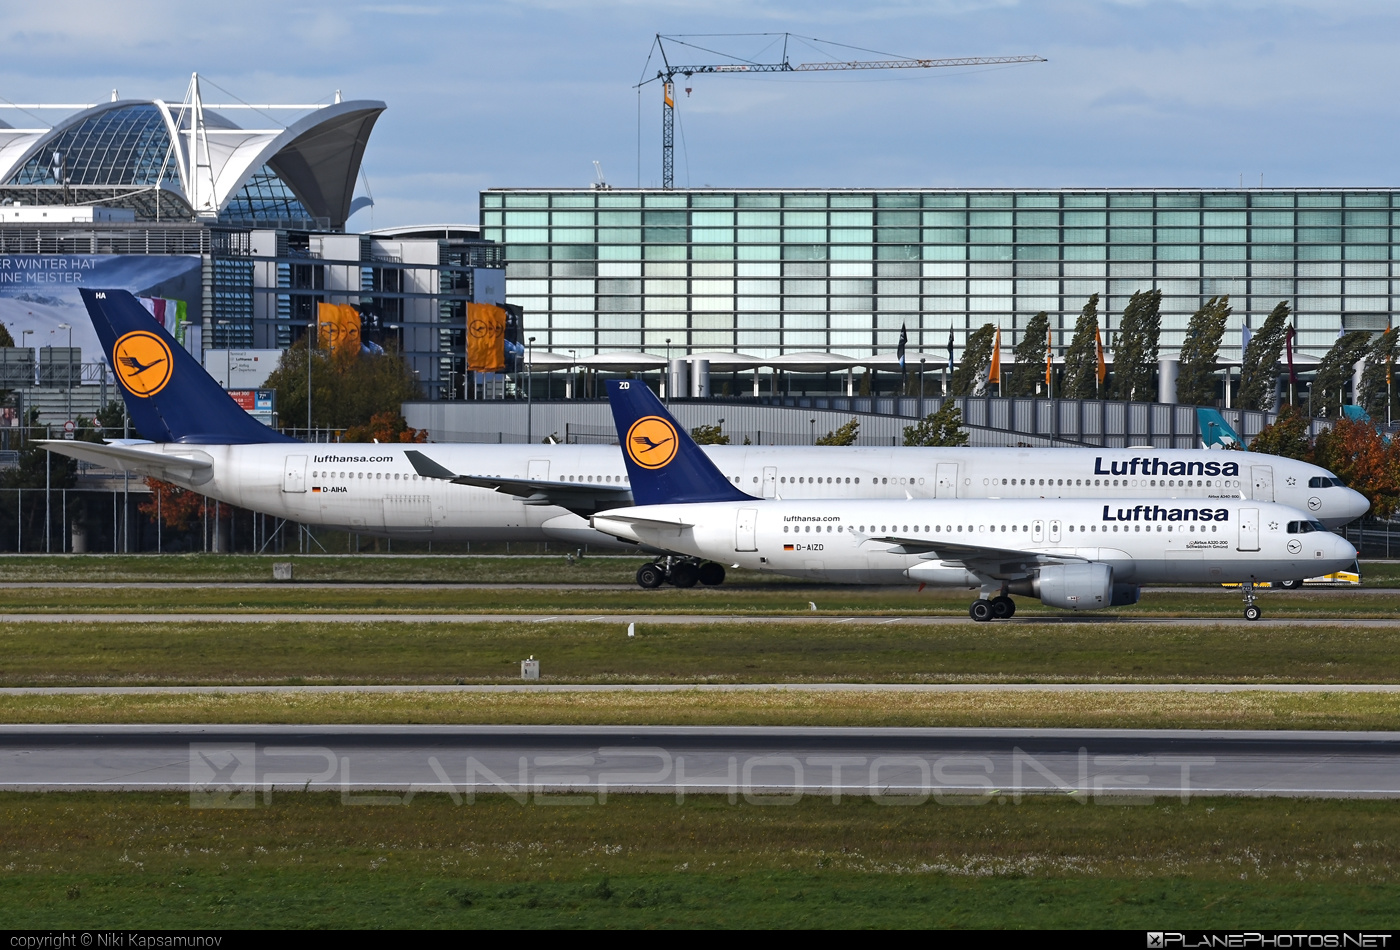 Airbus A320-214 - D-AIZD operated by Lufthansa #a320 #a320family #airbus #airbus320 #lufthansa